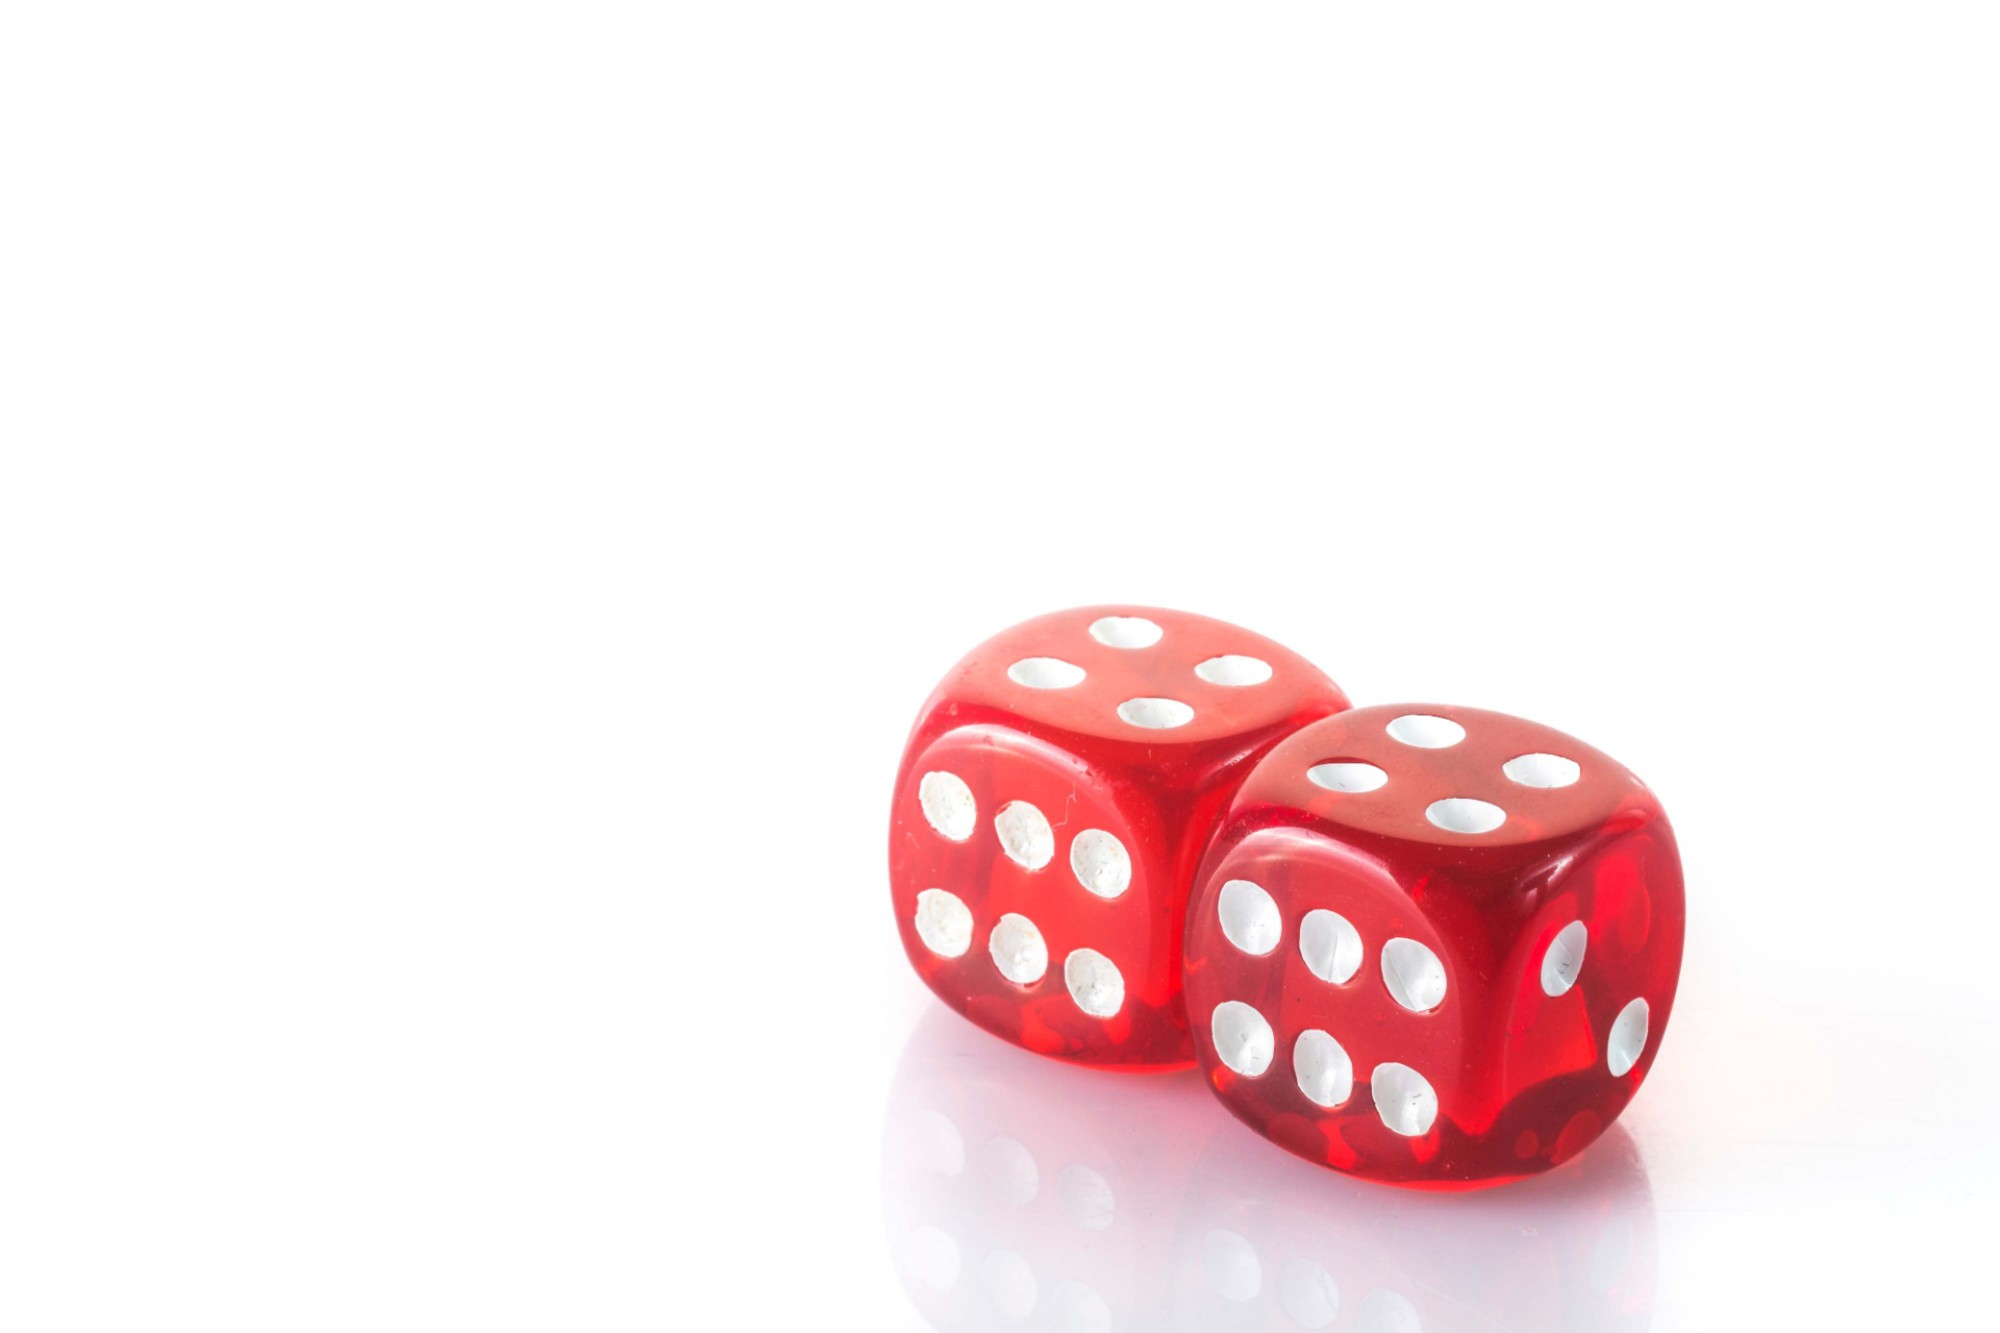 What Is Cee Lo The Chinese Dice Game That Led To Four Deaths In Brooklyn